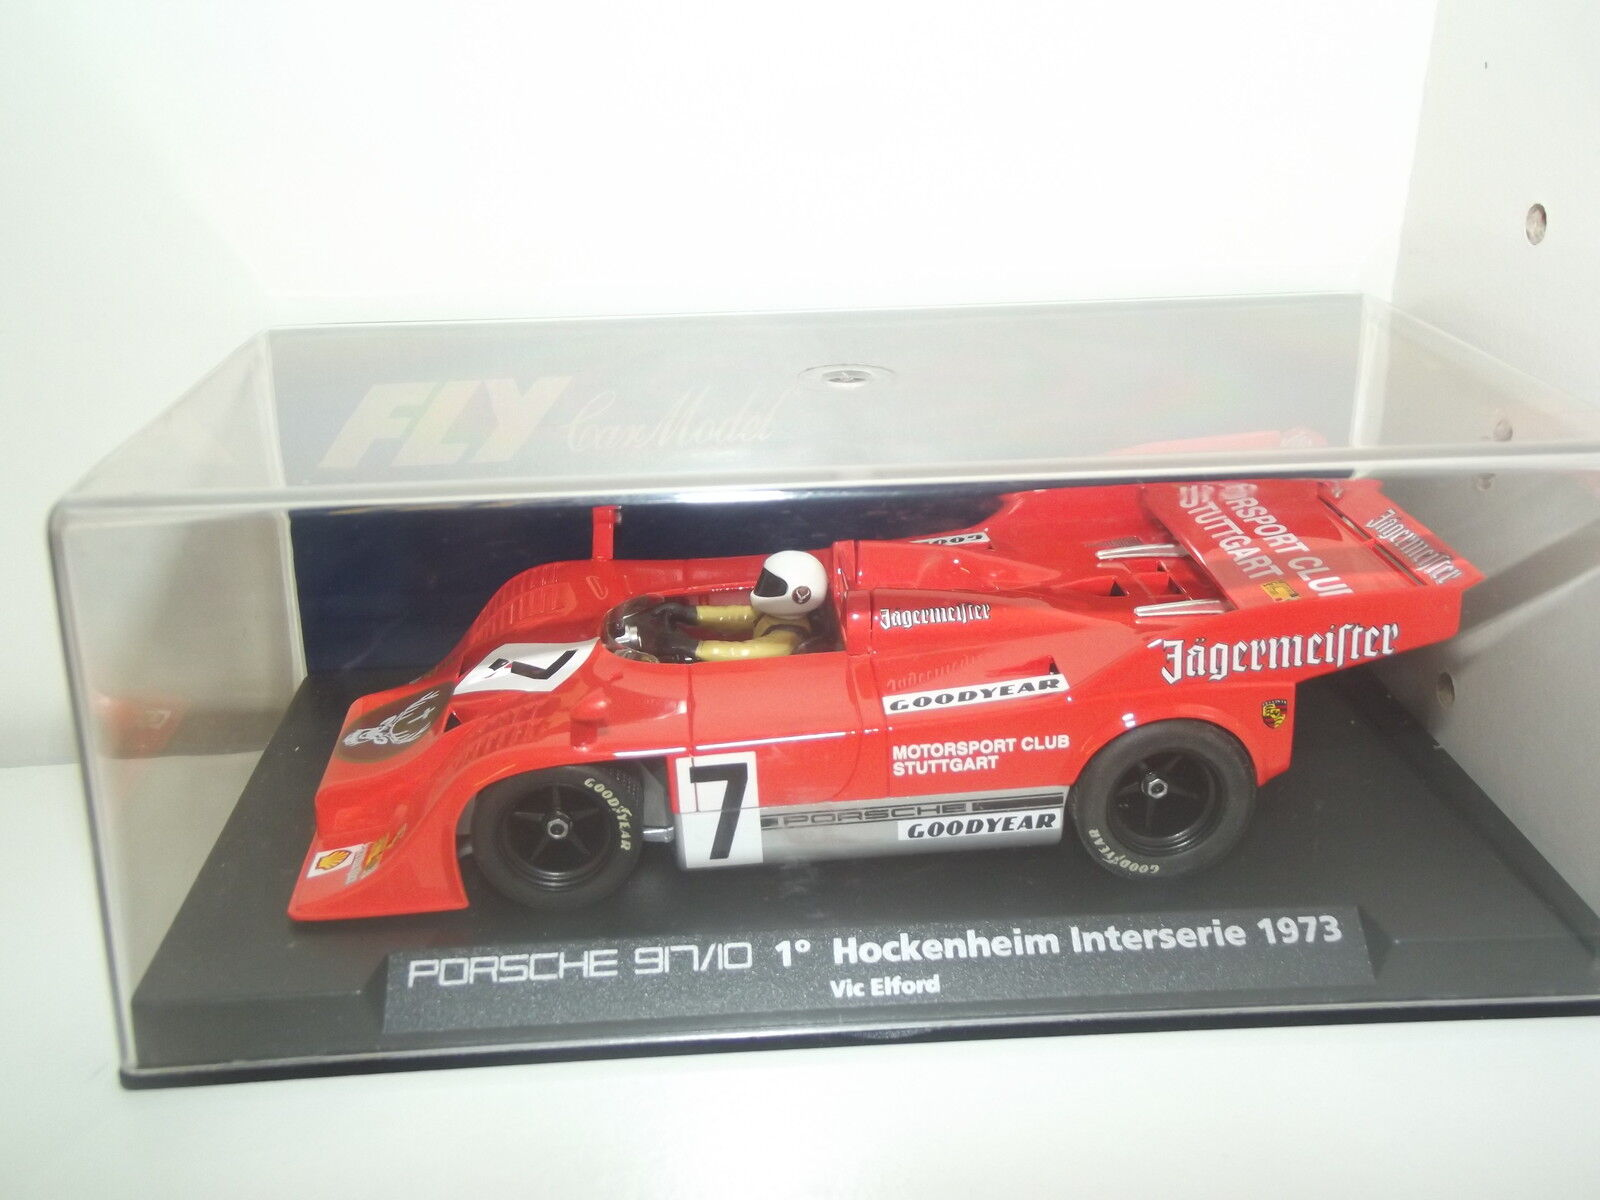 PORSCHE 917 10 1° HOCHENHEIM INTERSERIE 1973-FLY CAR COLLECTION-SLOT-1 32--E22